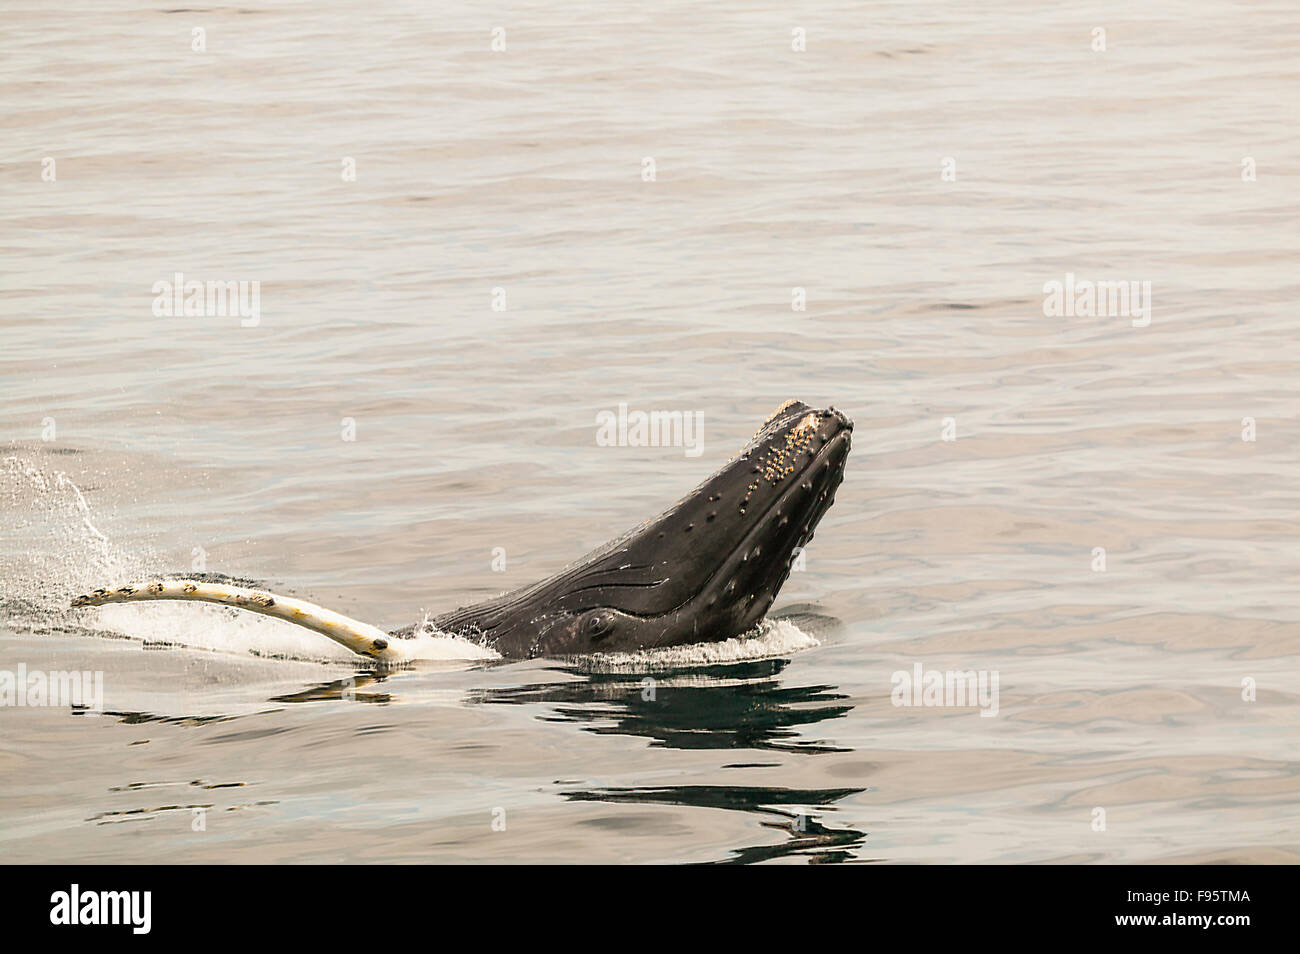 Humpback Whale spyhopping, (Megaptera novaeangliae), Witless Bay Ecological Reserve, Newfoundland, Canada - Stock Image